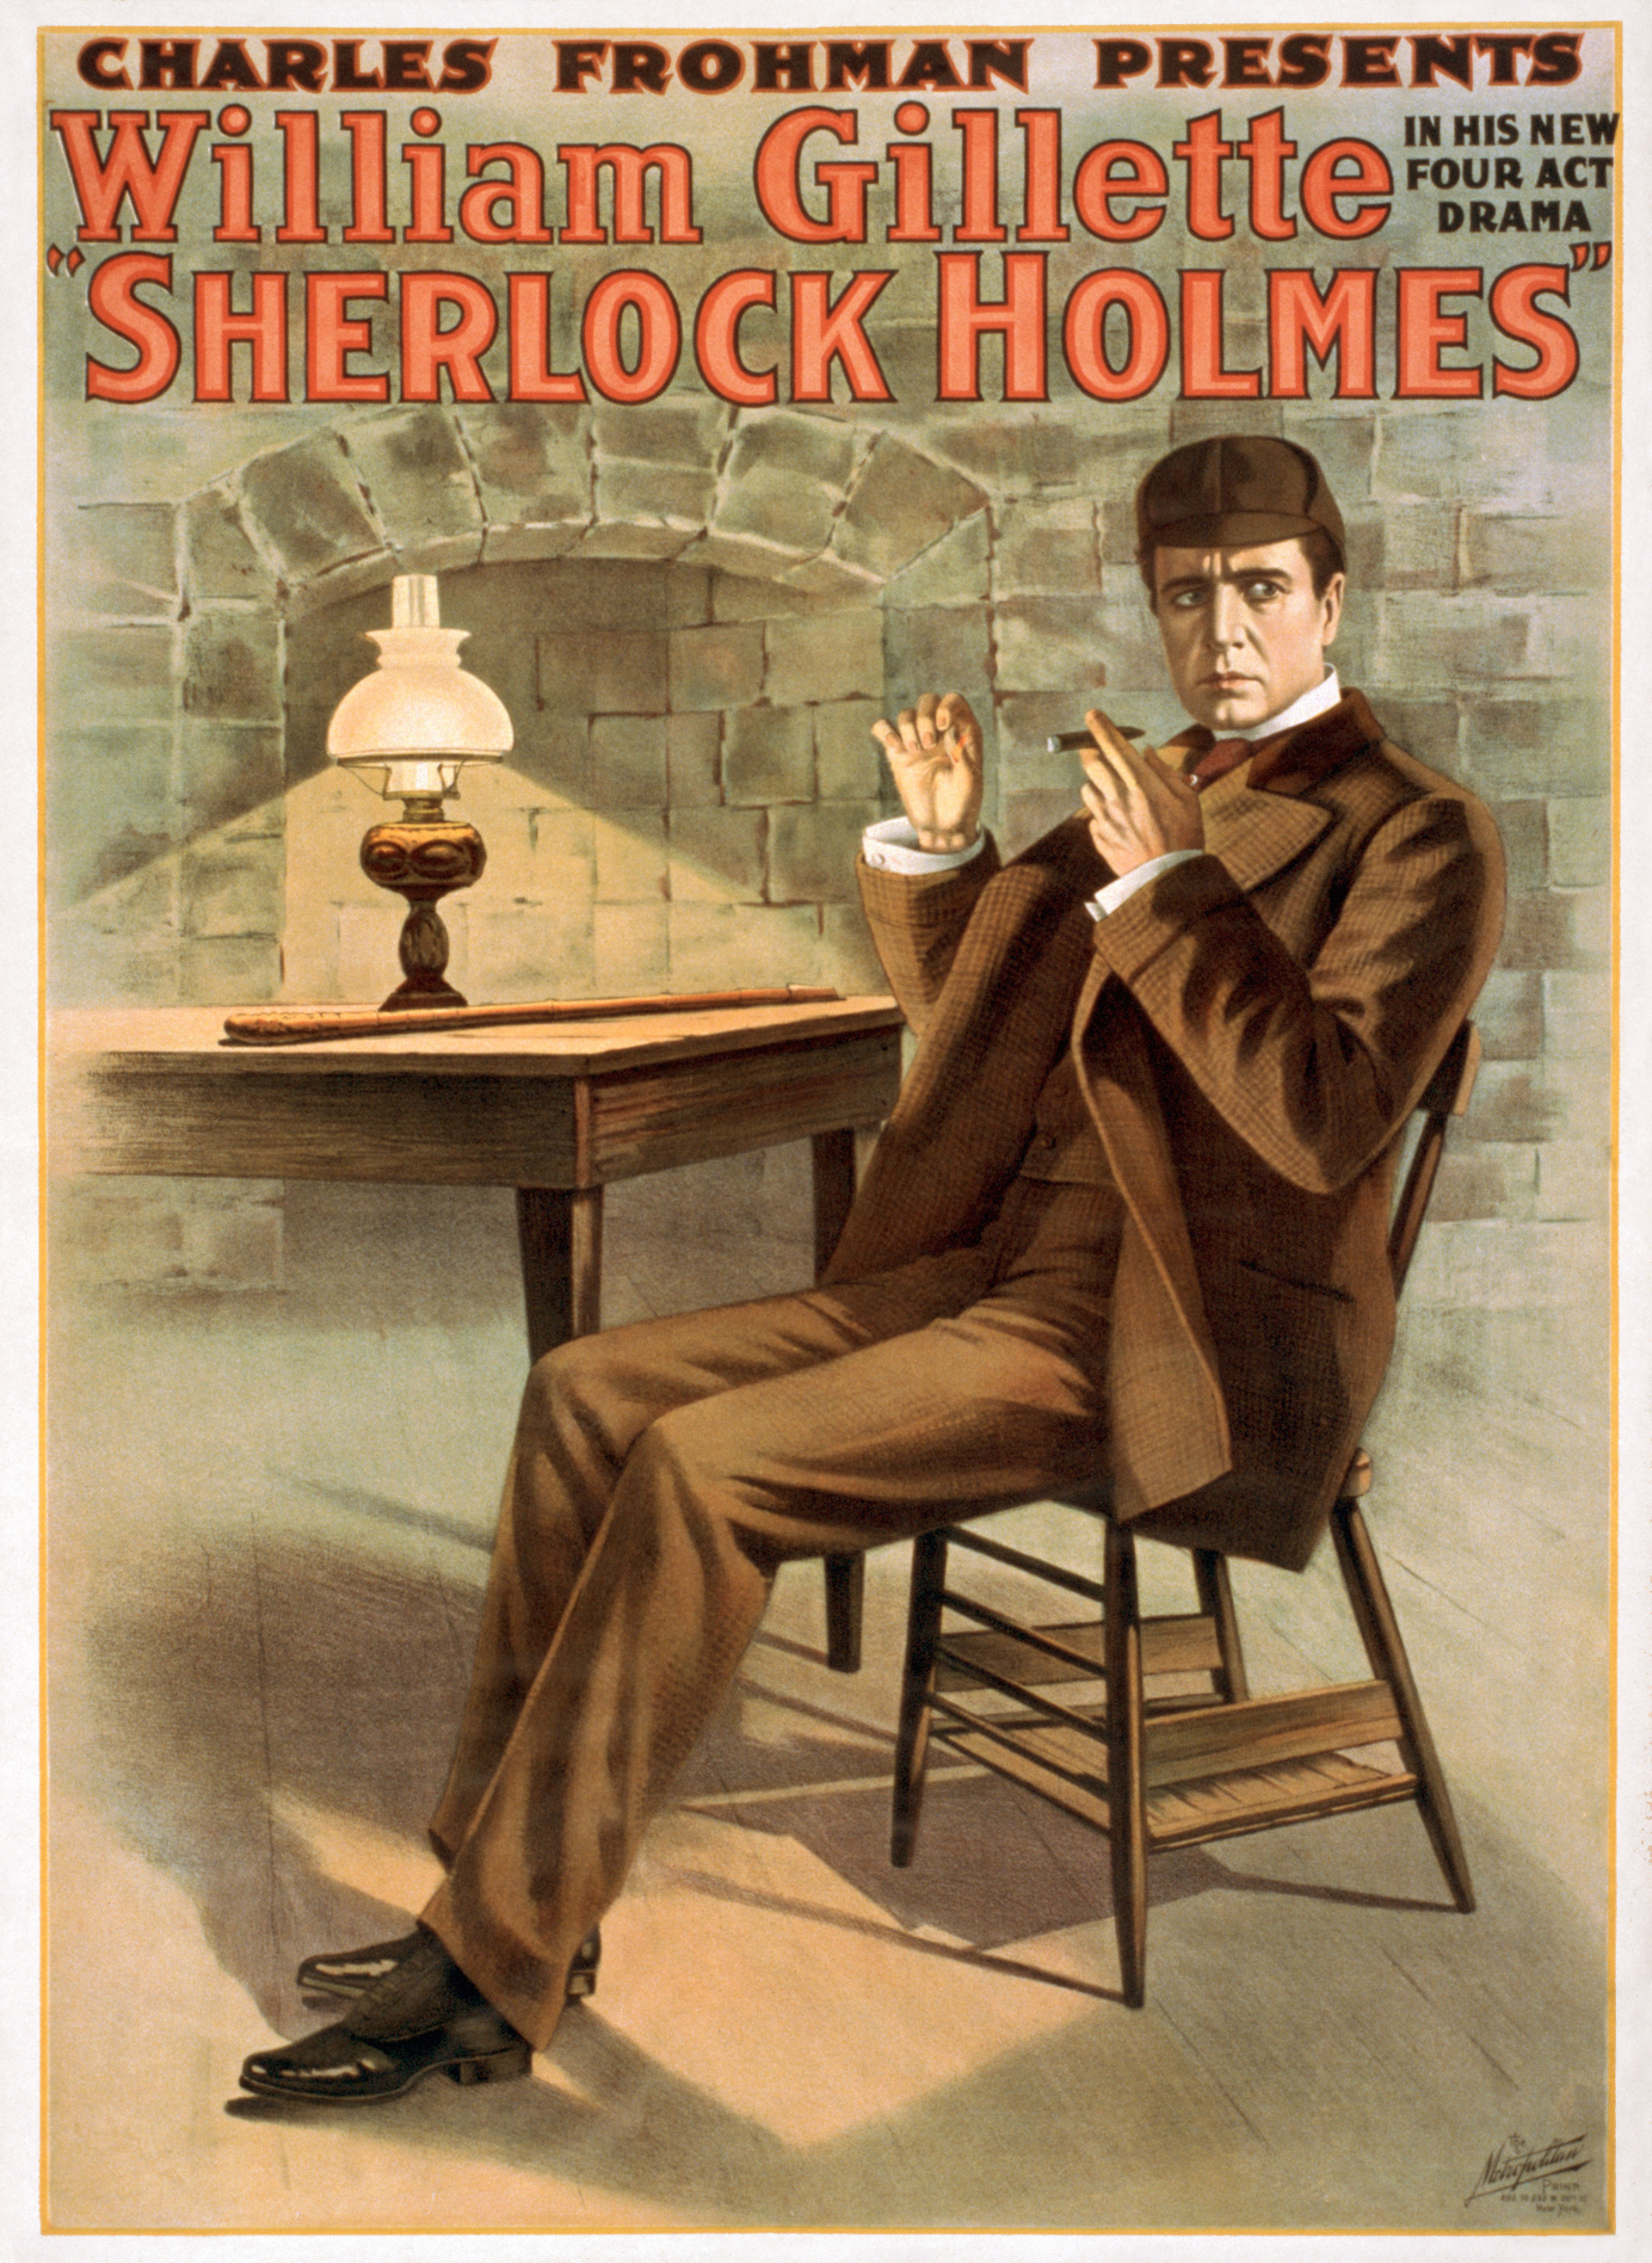 FileCharles Frohman presents William Gillette in his new four act 1920x2630